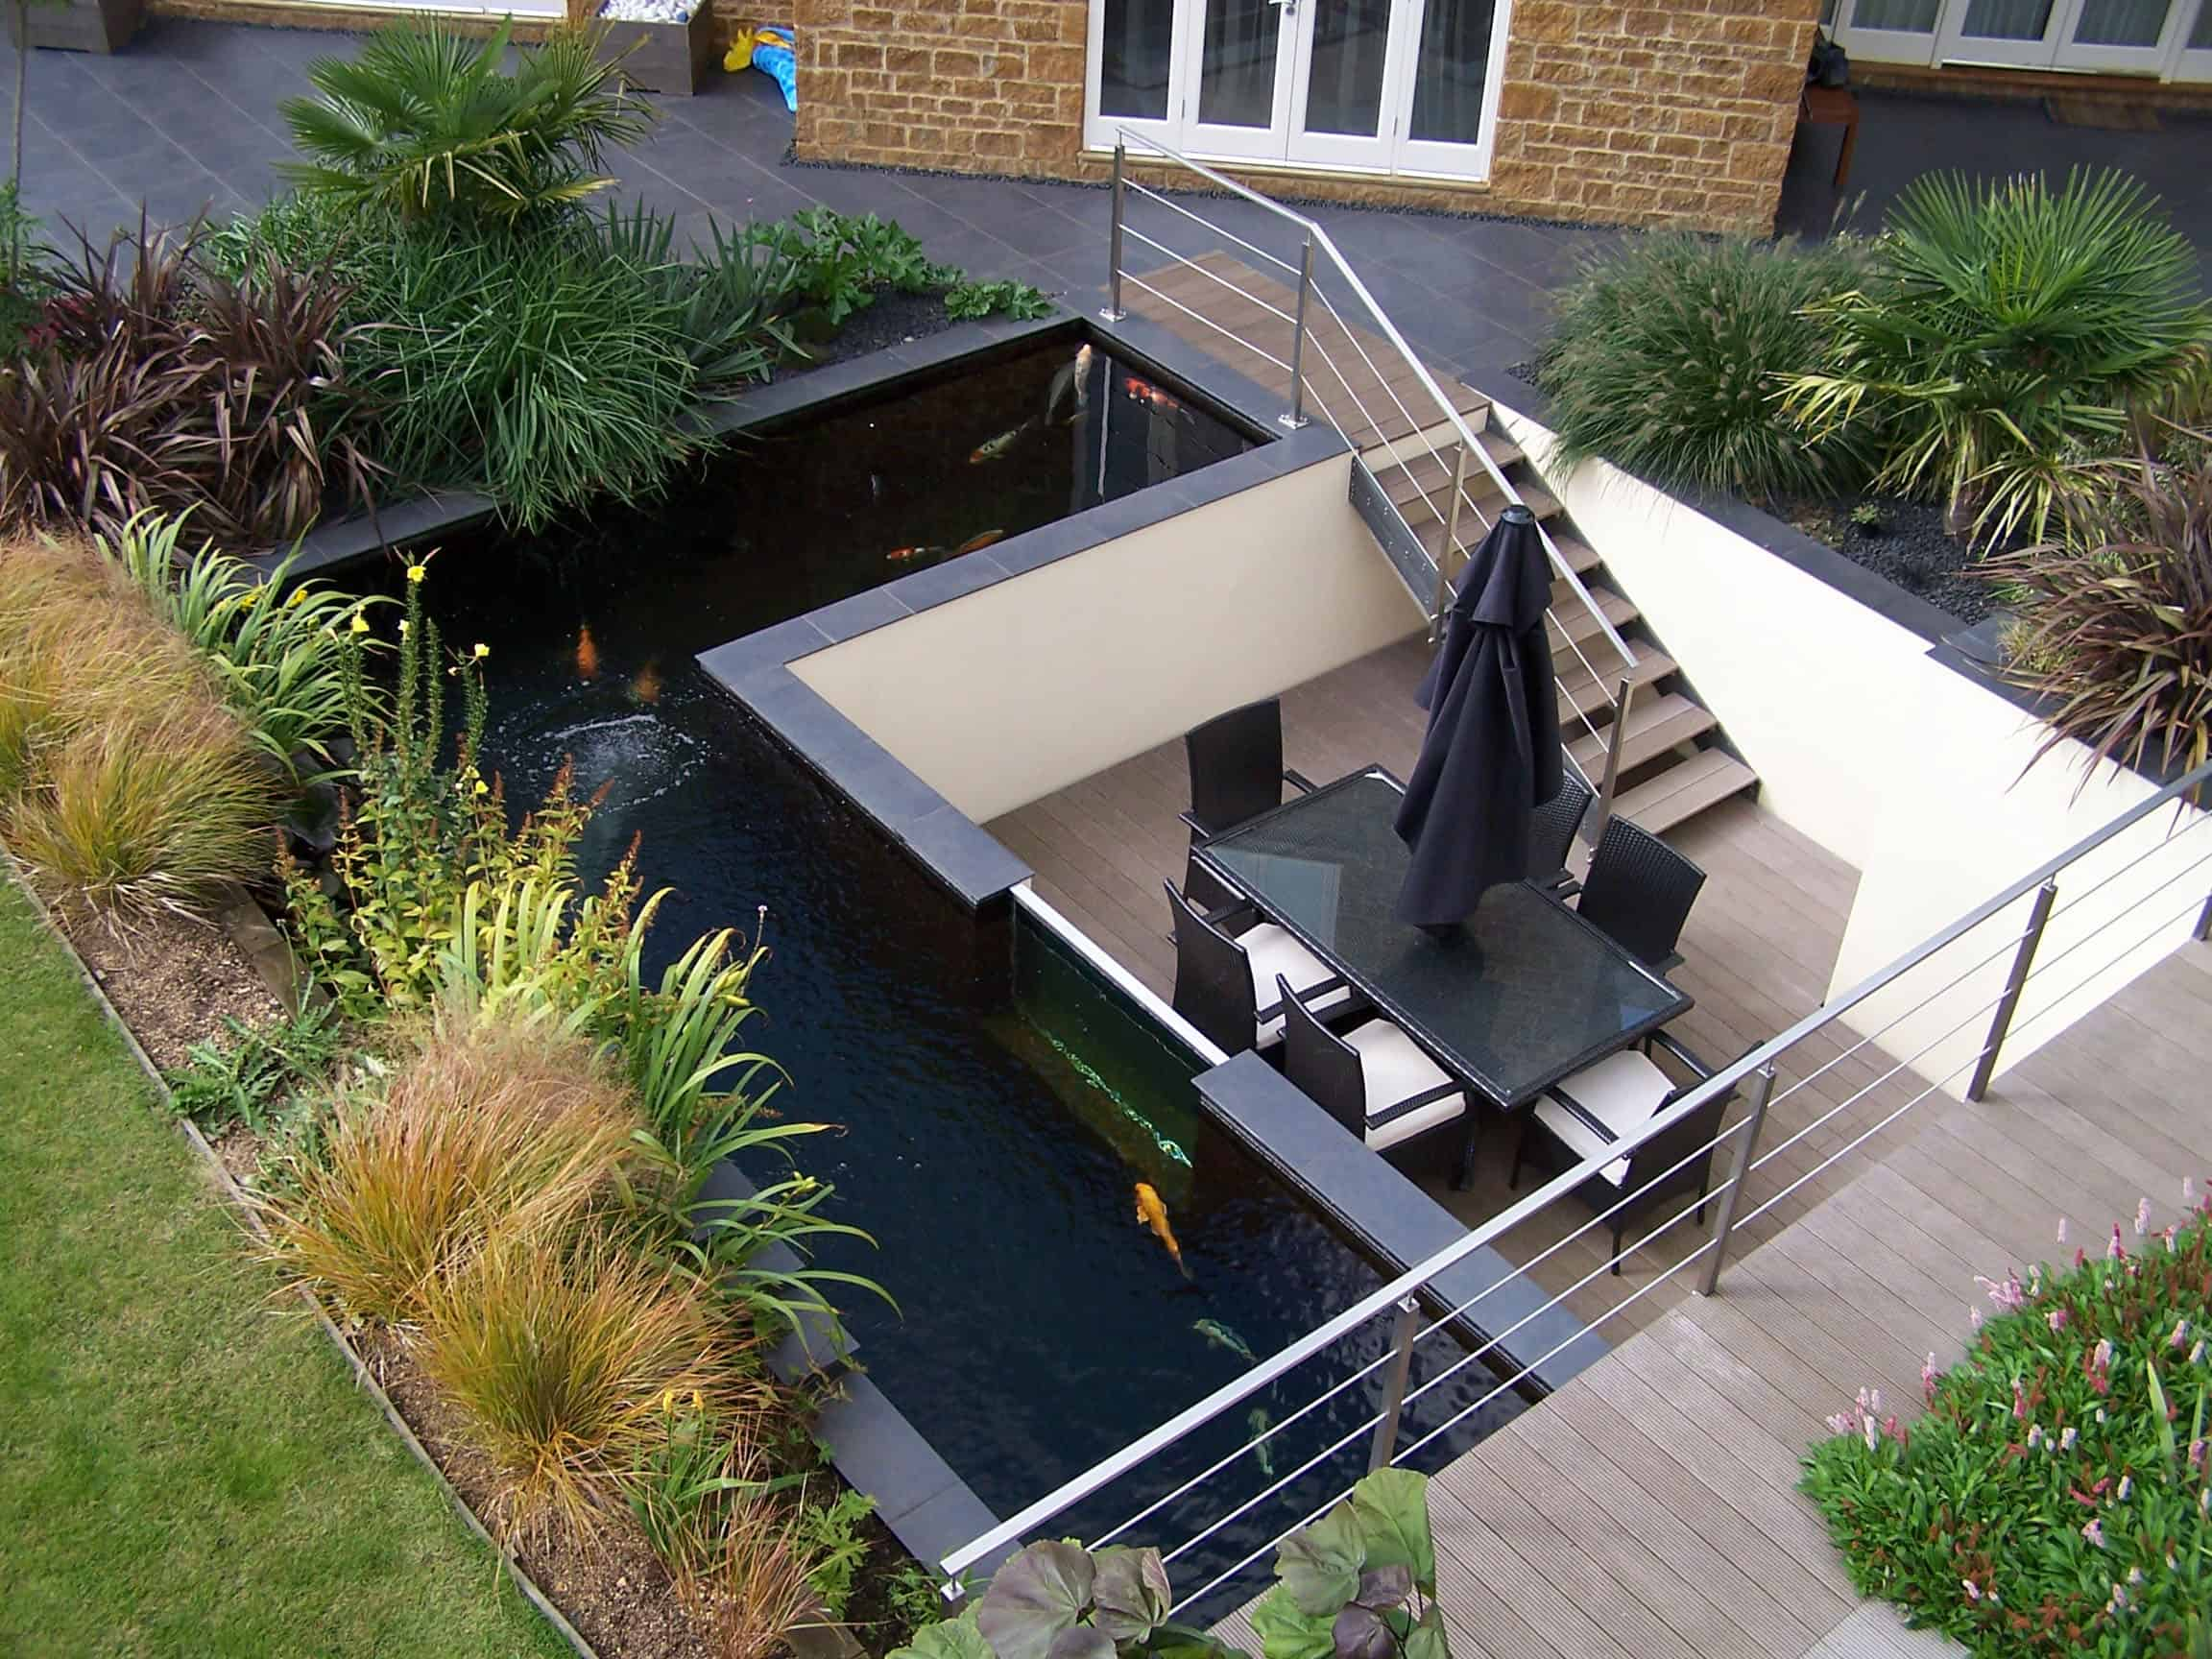 35 Sublime Koi Pond Designs and Water Garden Ideas for ... on Koi Ponds Ideas  id=29346